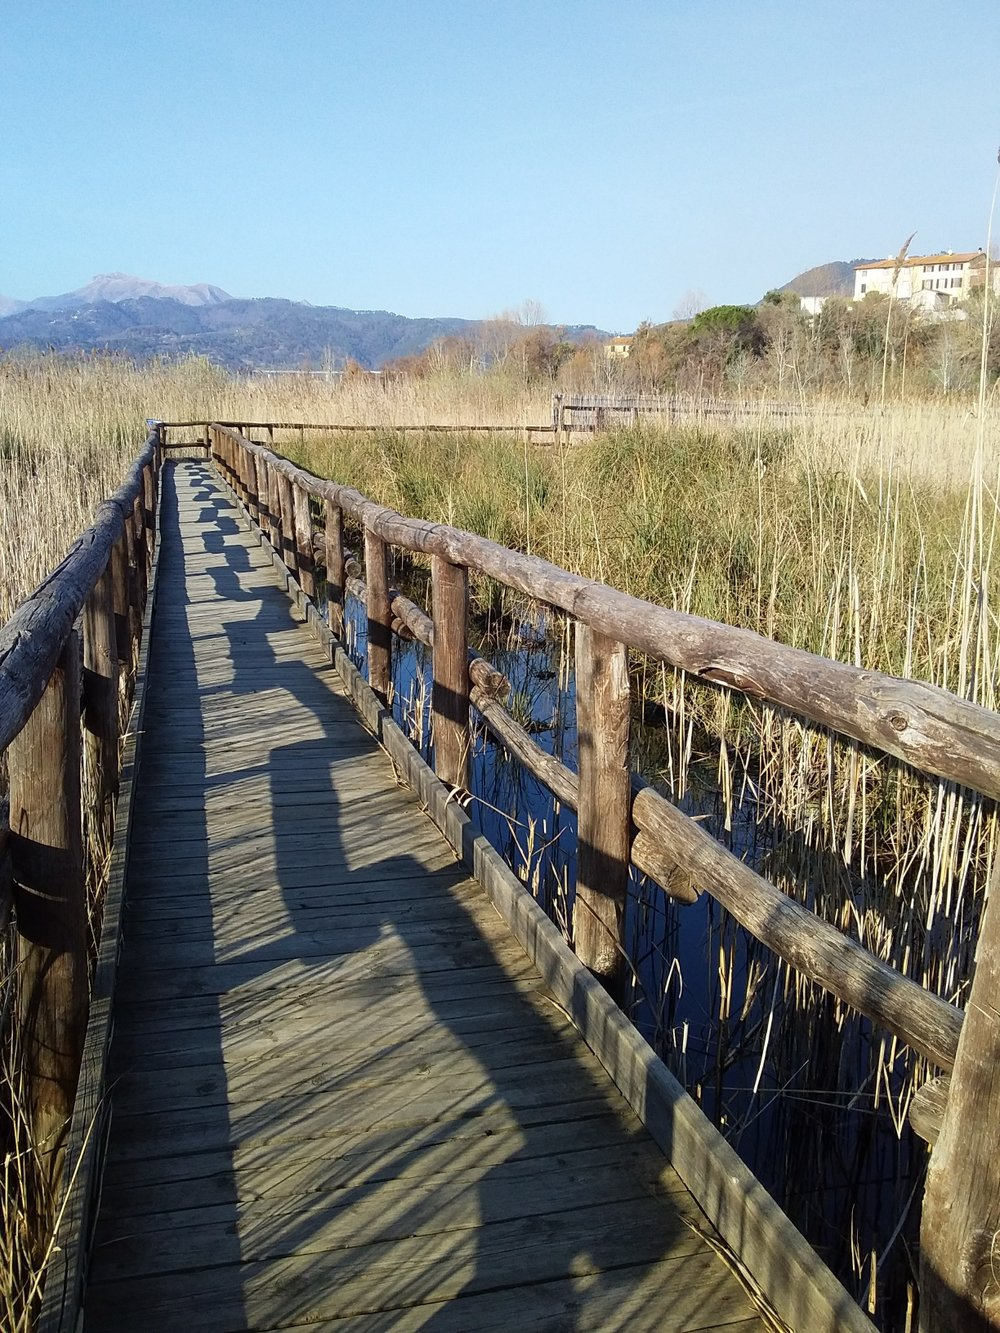 The boardwalk path through the marshes